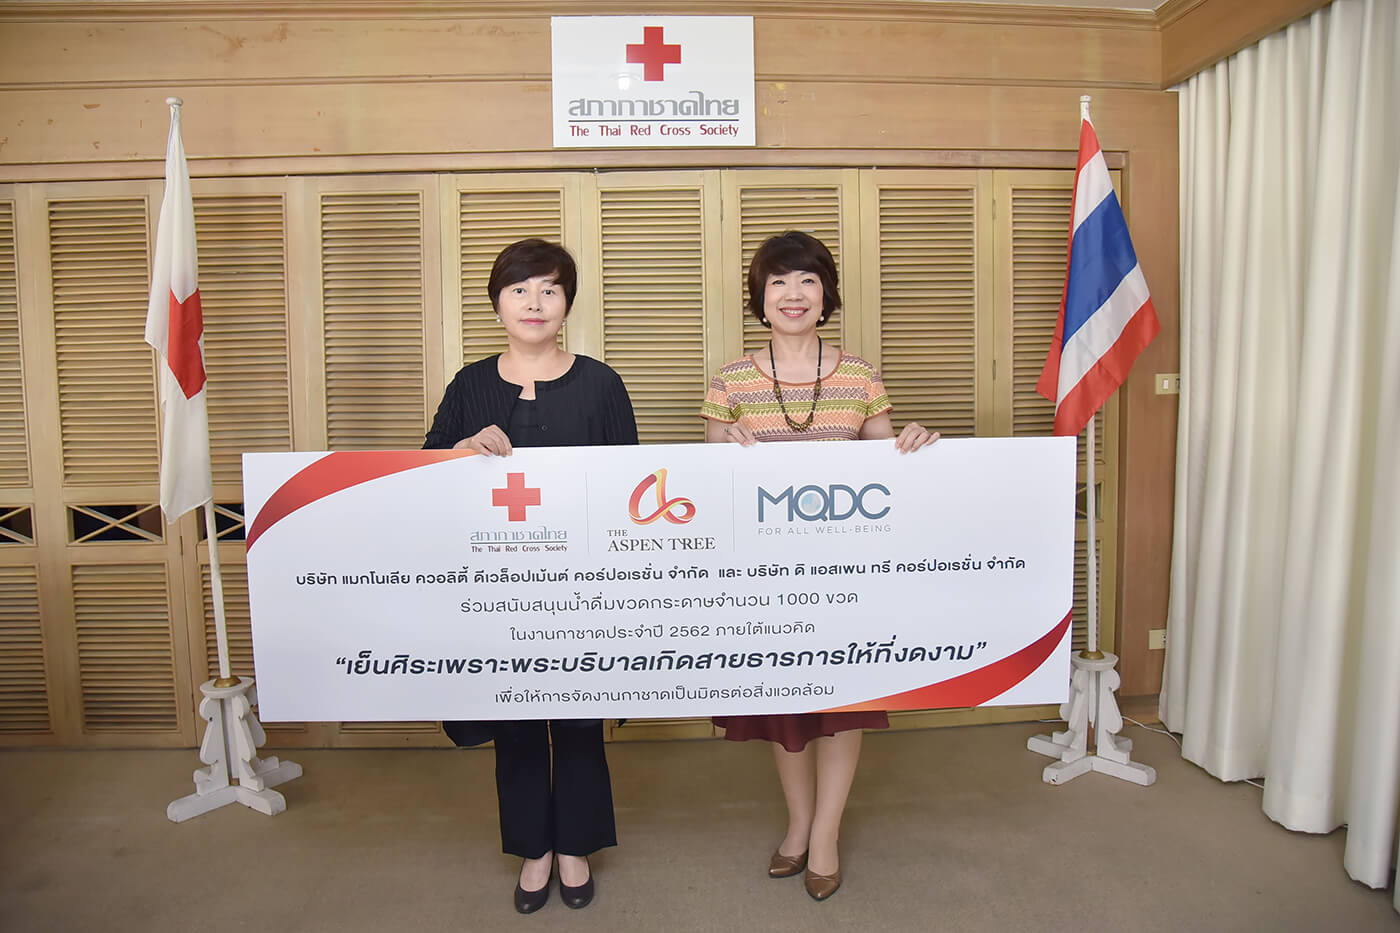 MQDC and Thai Red Cross Society support Red Cross Fair 2019 for an eco-friendly society free of plastic waste